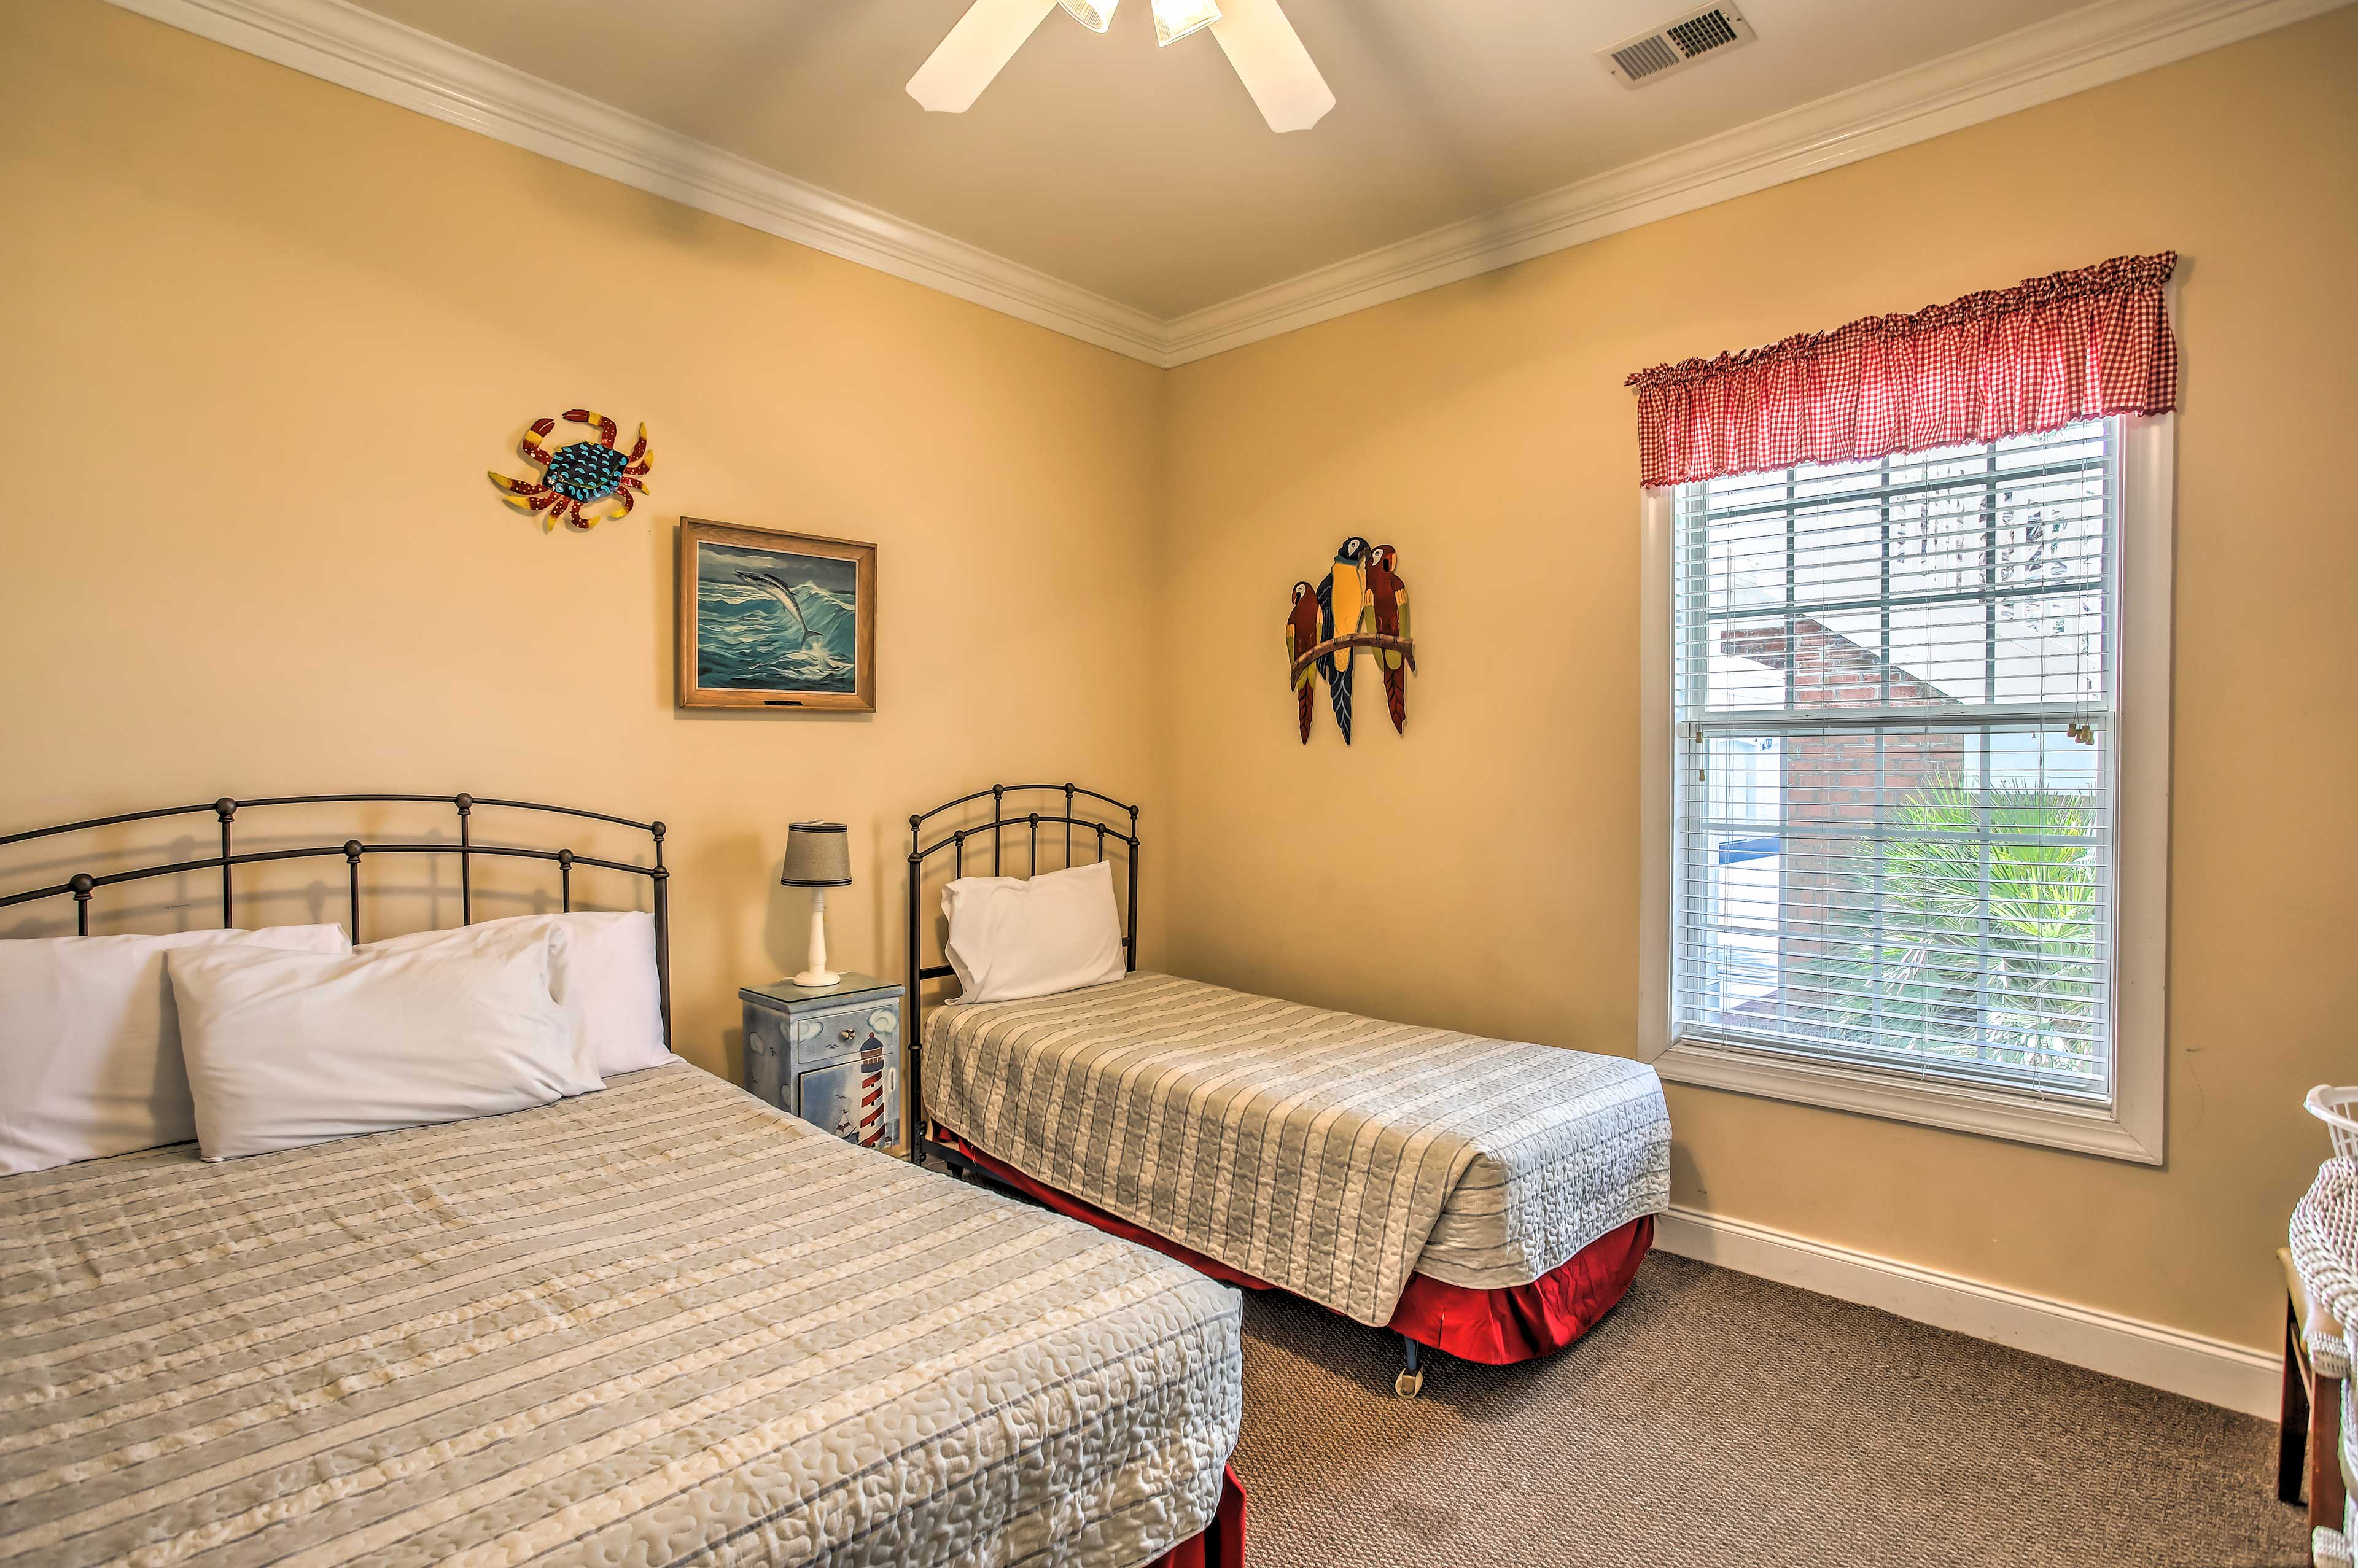 Kids will love sharing this room with a full bed and twin bed.